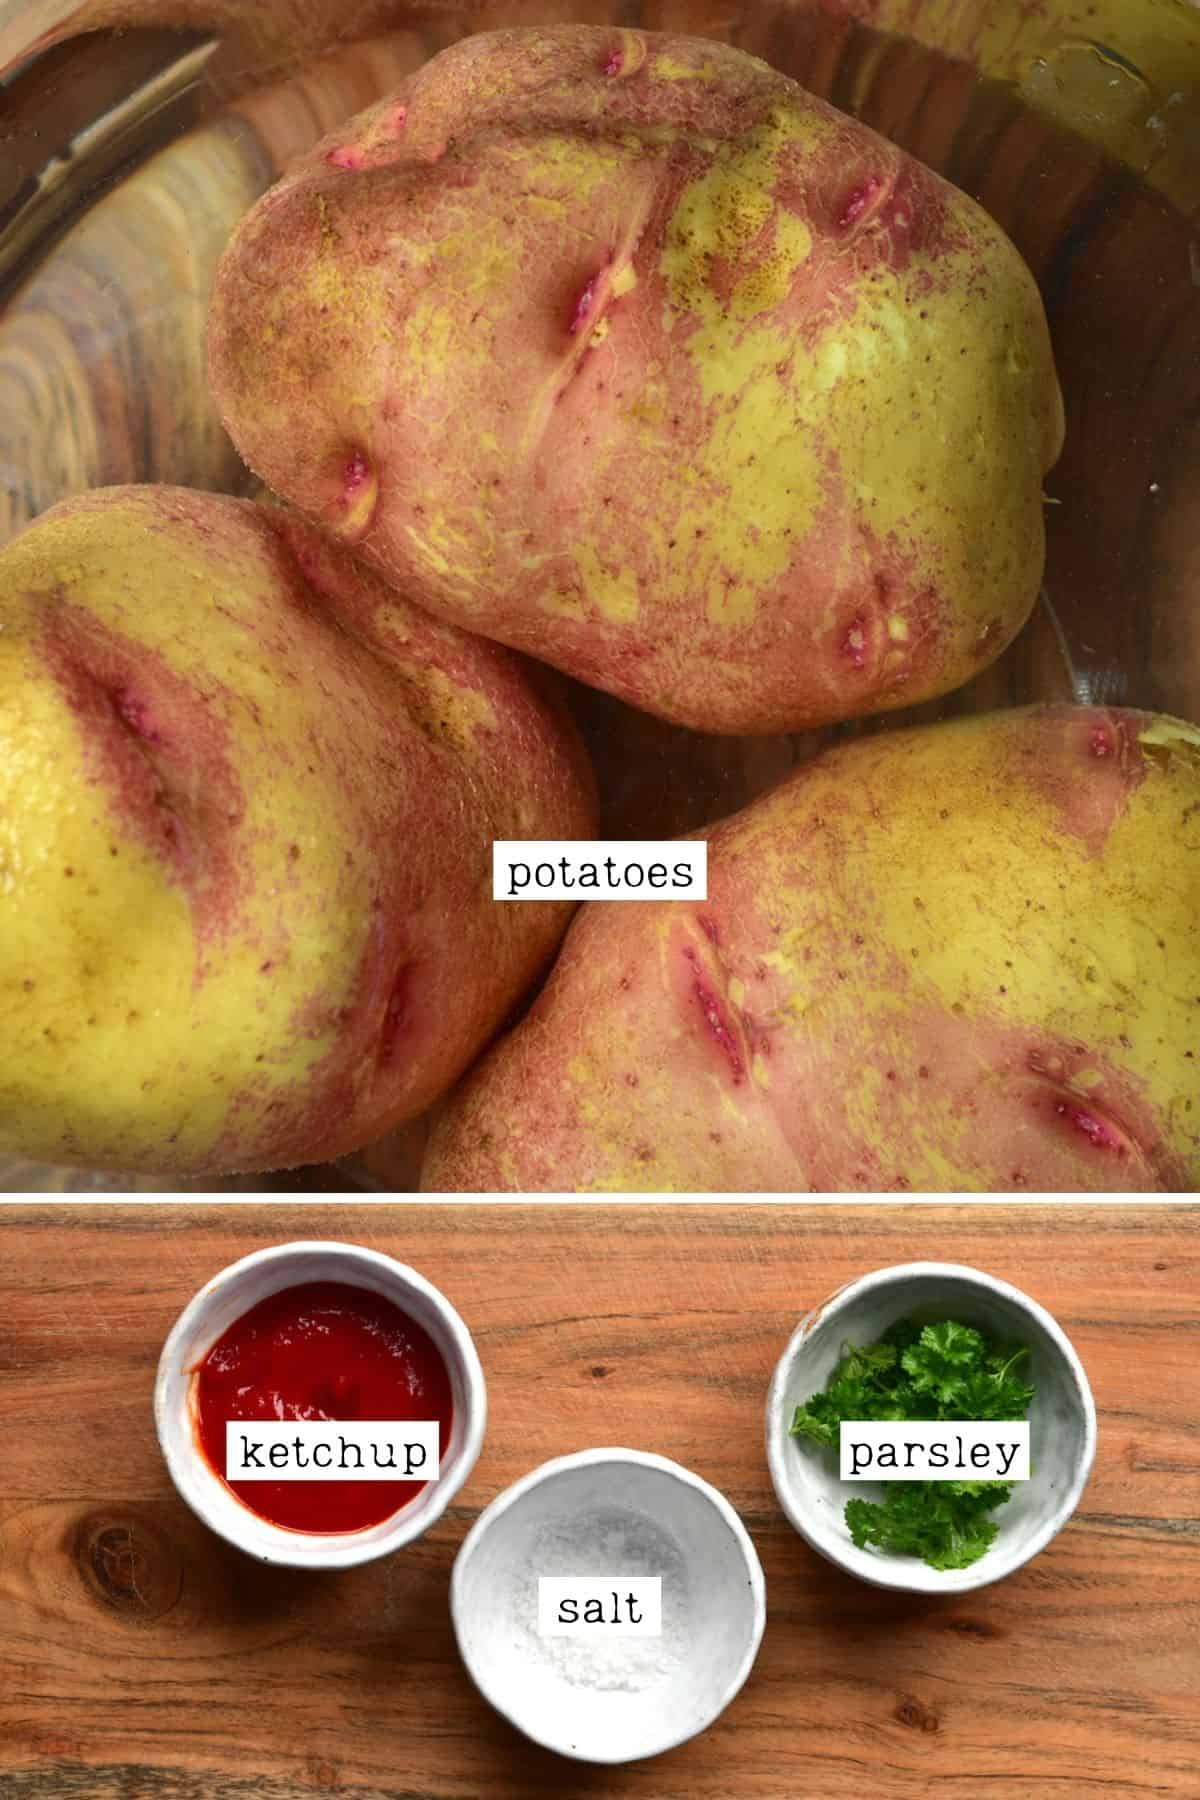 Ingredients for accordion potatoes